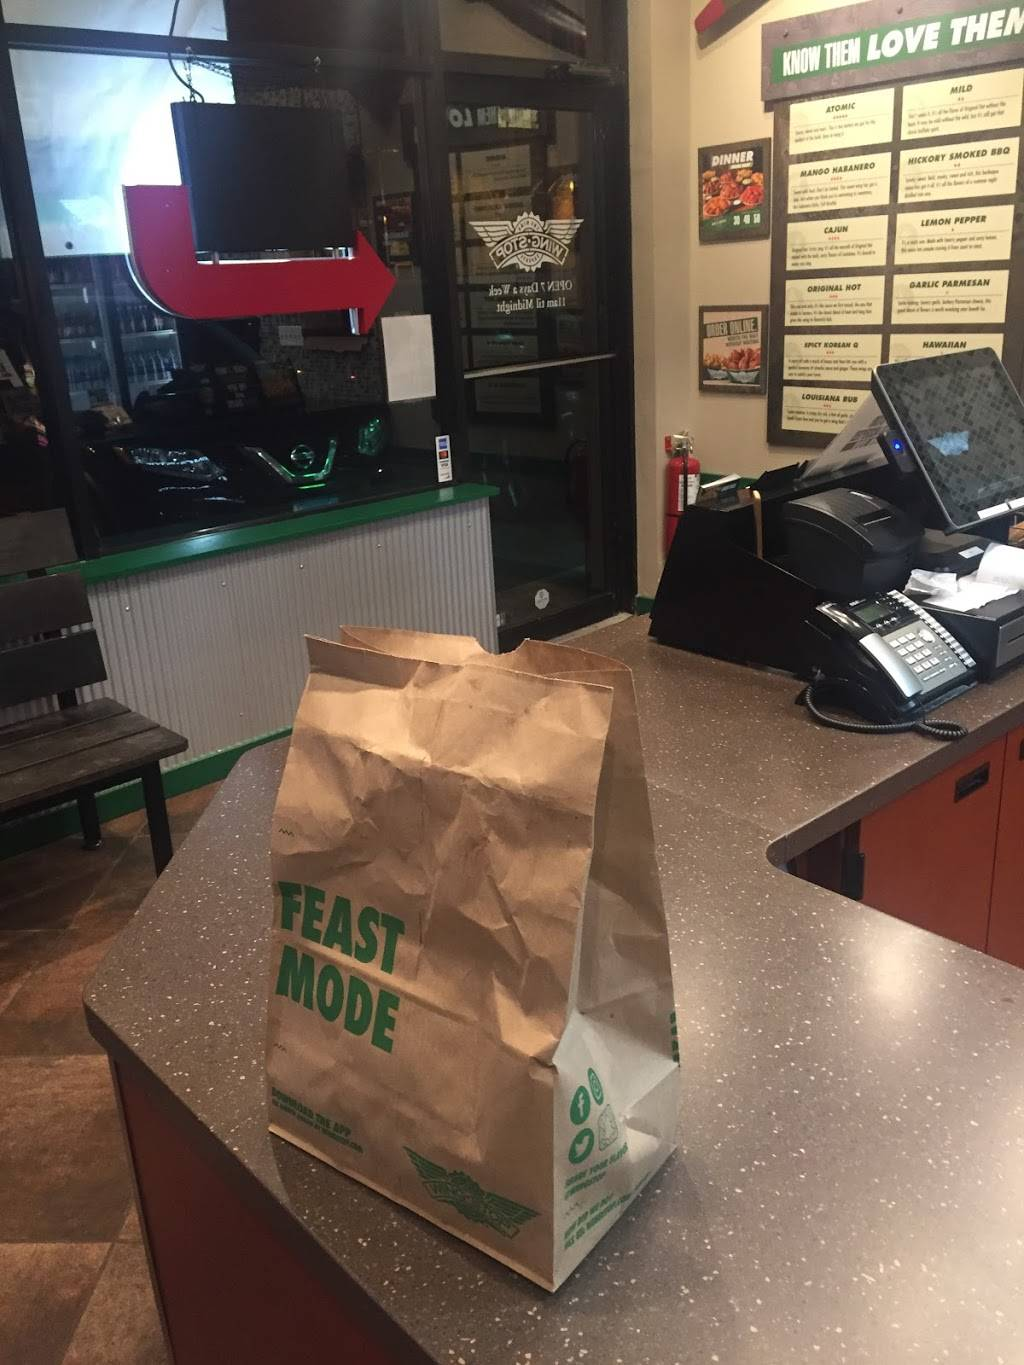 Wingstop | restaurant | 4547 N Broadway, Chicago, IL 60640, USA | 7735060388 OR +1 773-506-0388